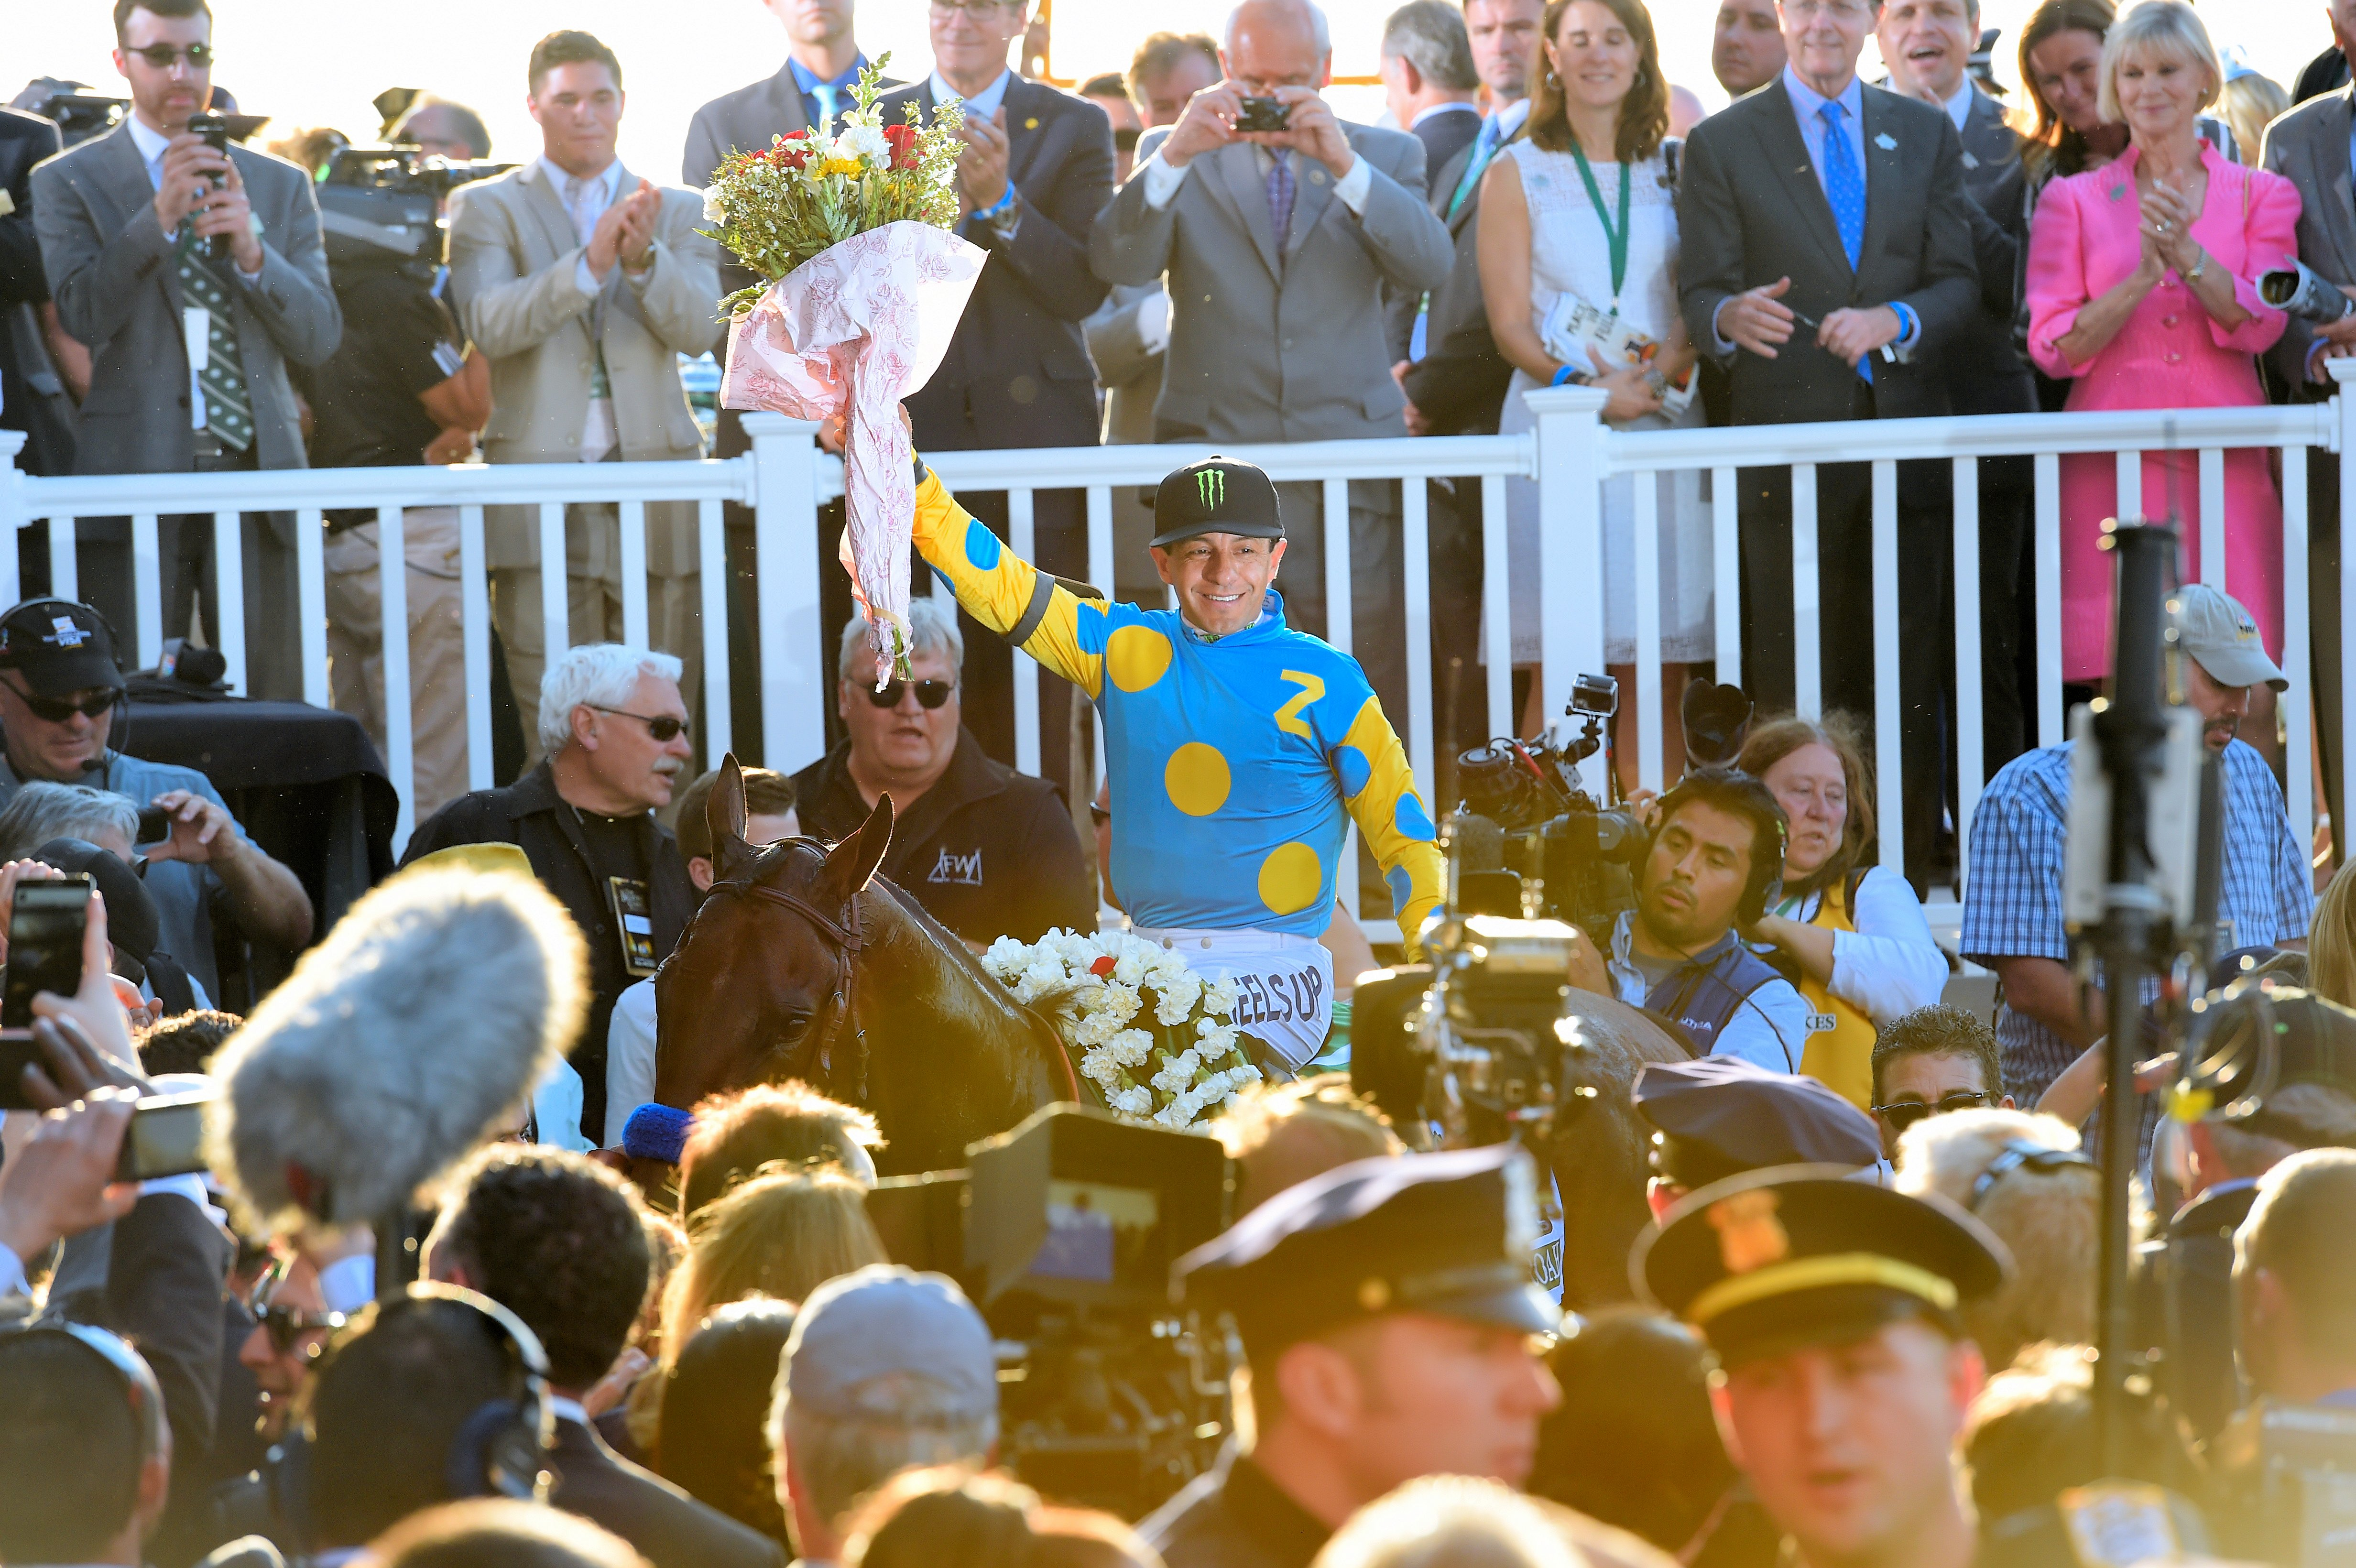 Victor Espinoza after winning the 2015 Belmont Stakes with American Pharoah (NYRA)